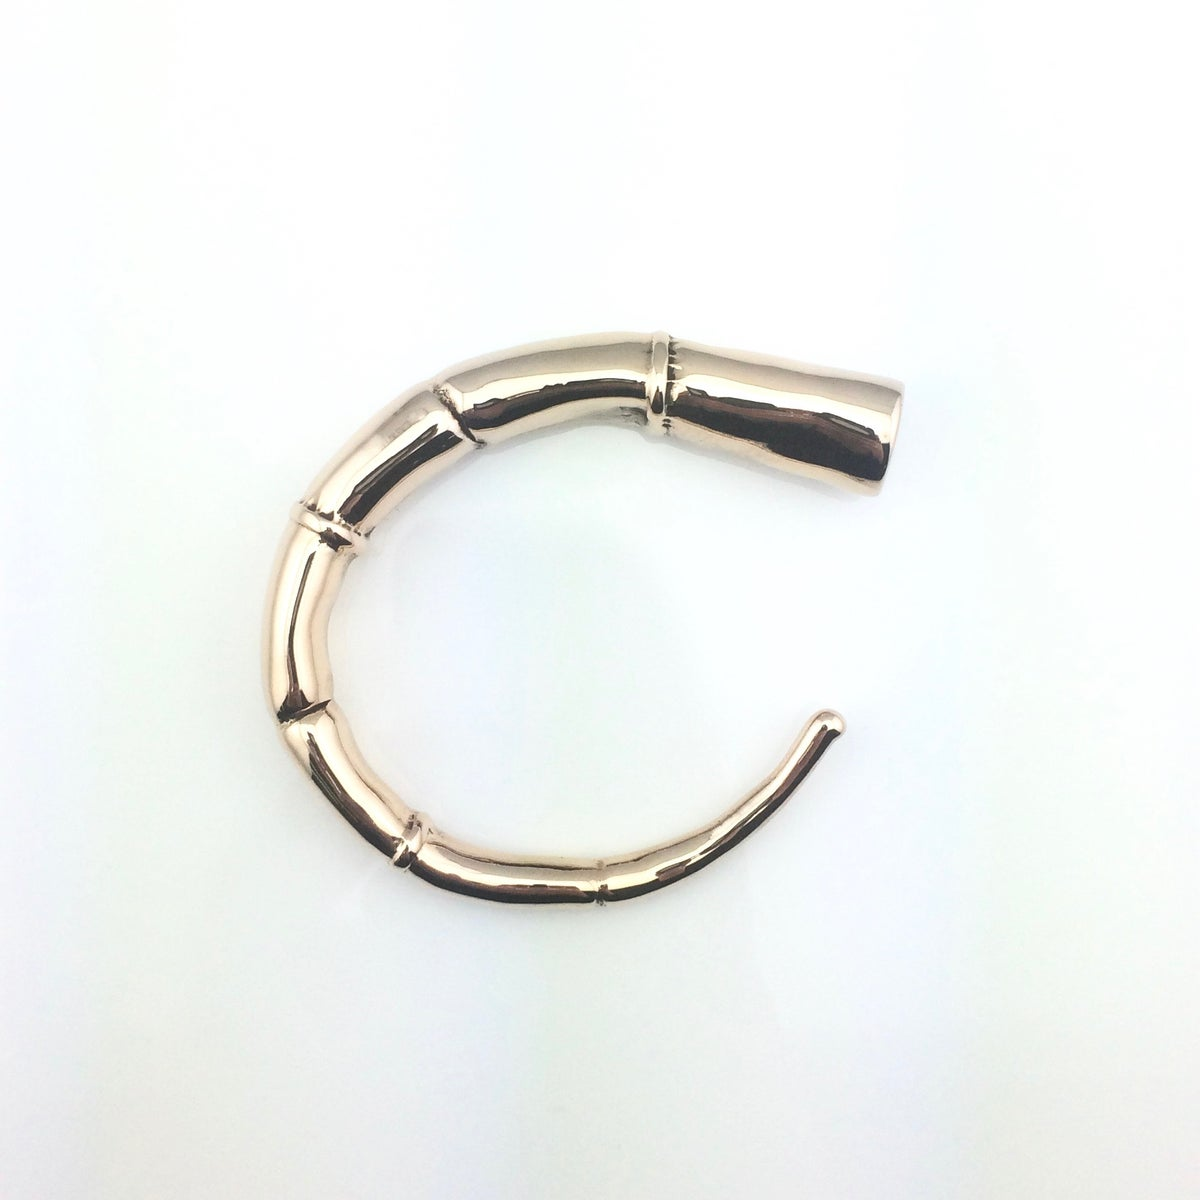 Image of BRONZE OPEN SIDE CUFF BRACELET